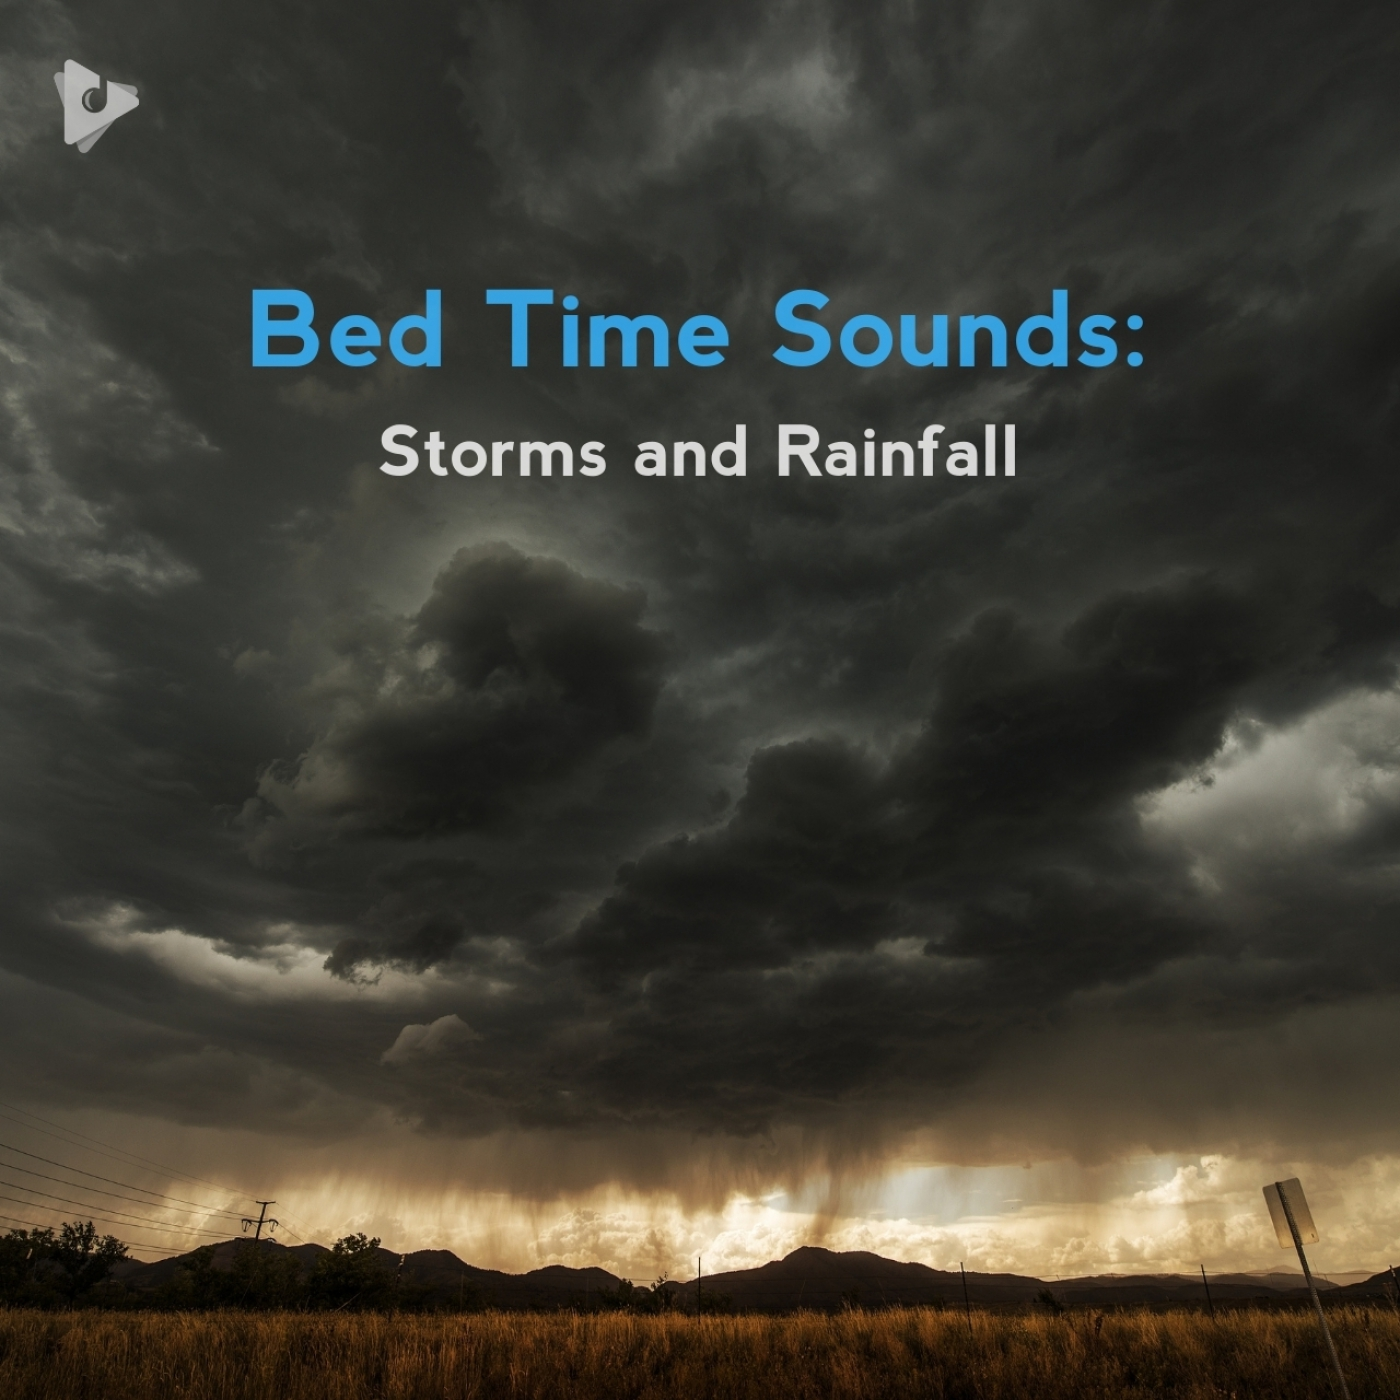 Bed Time Sounds: Storms and Rainfall